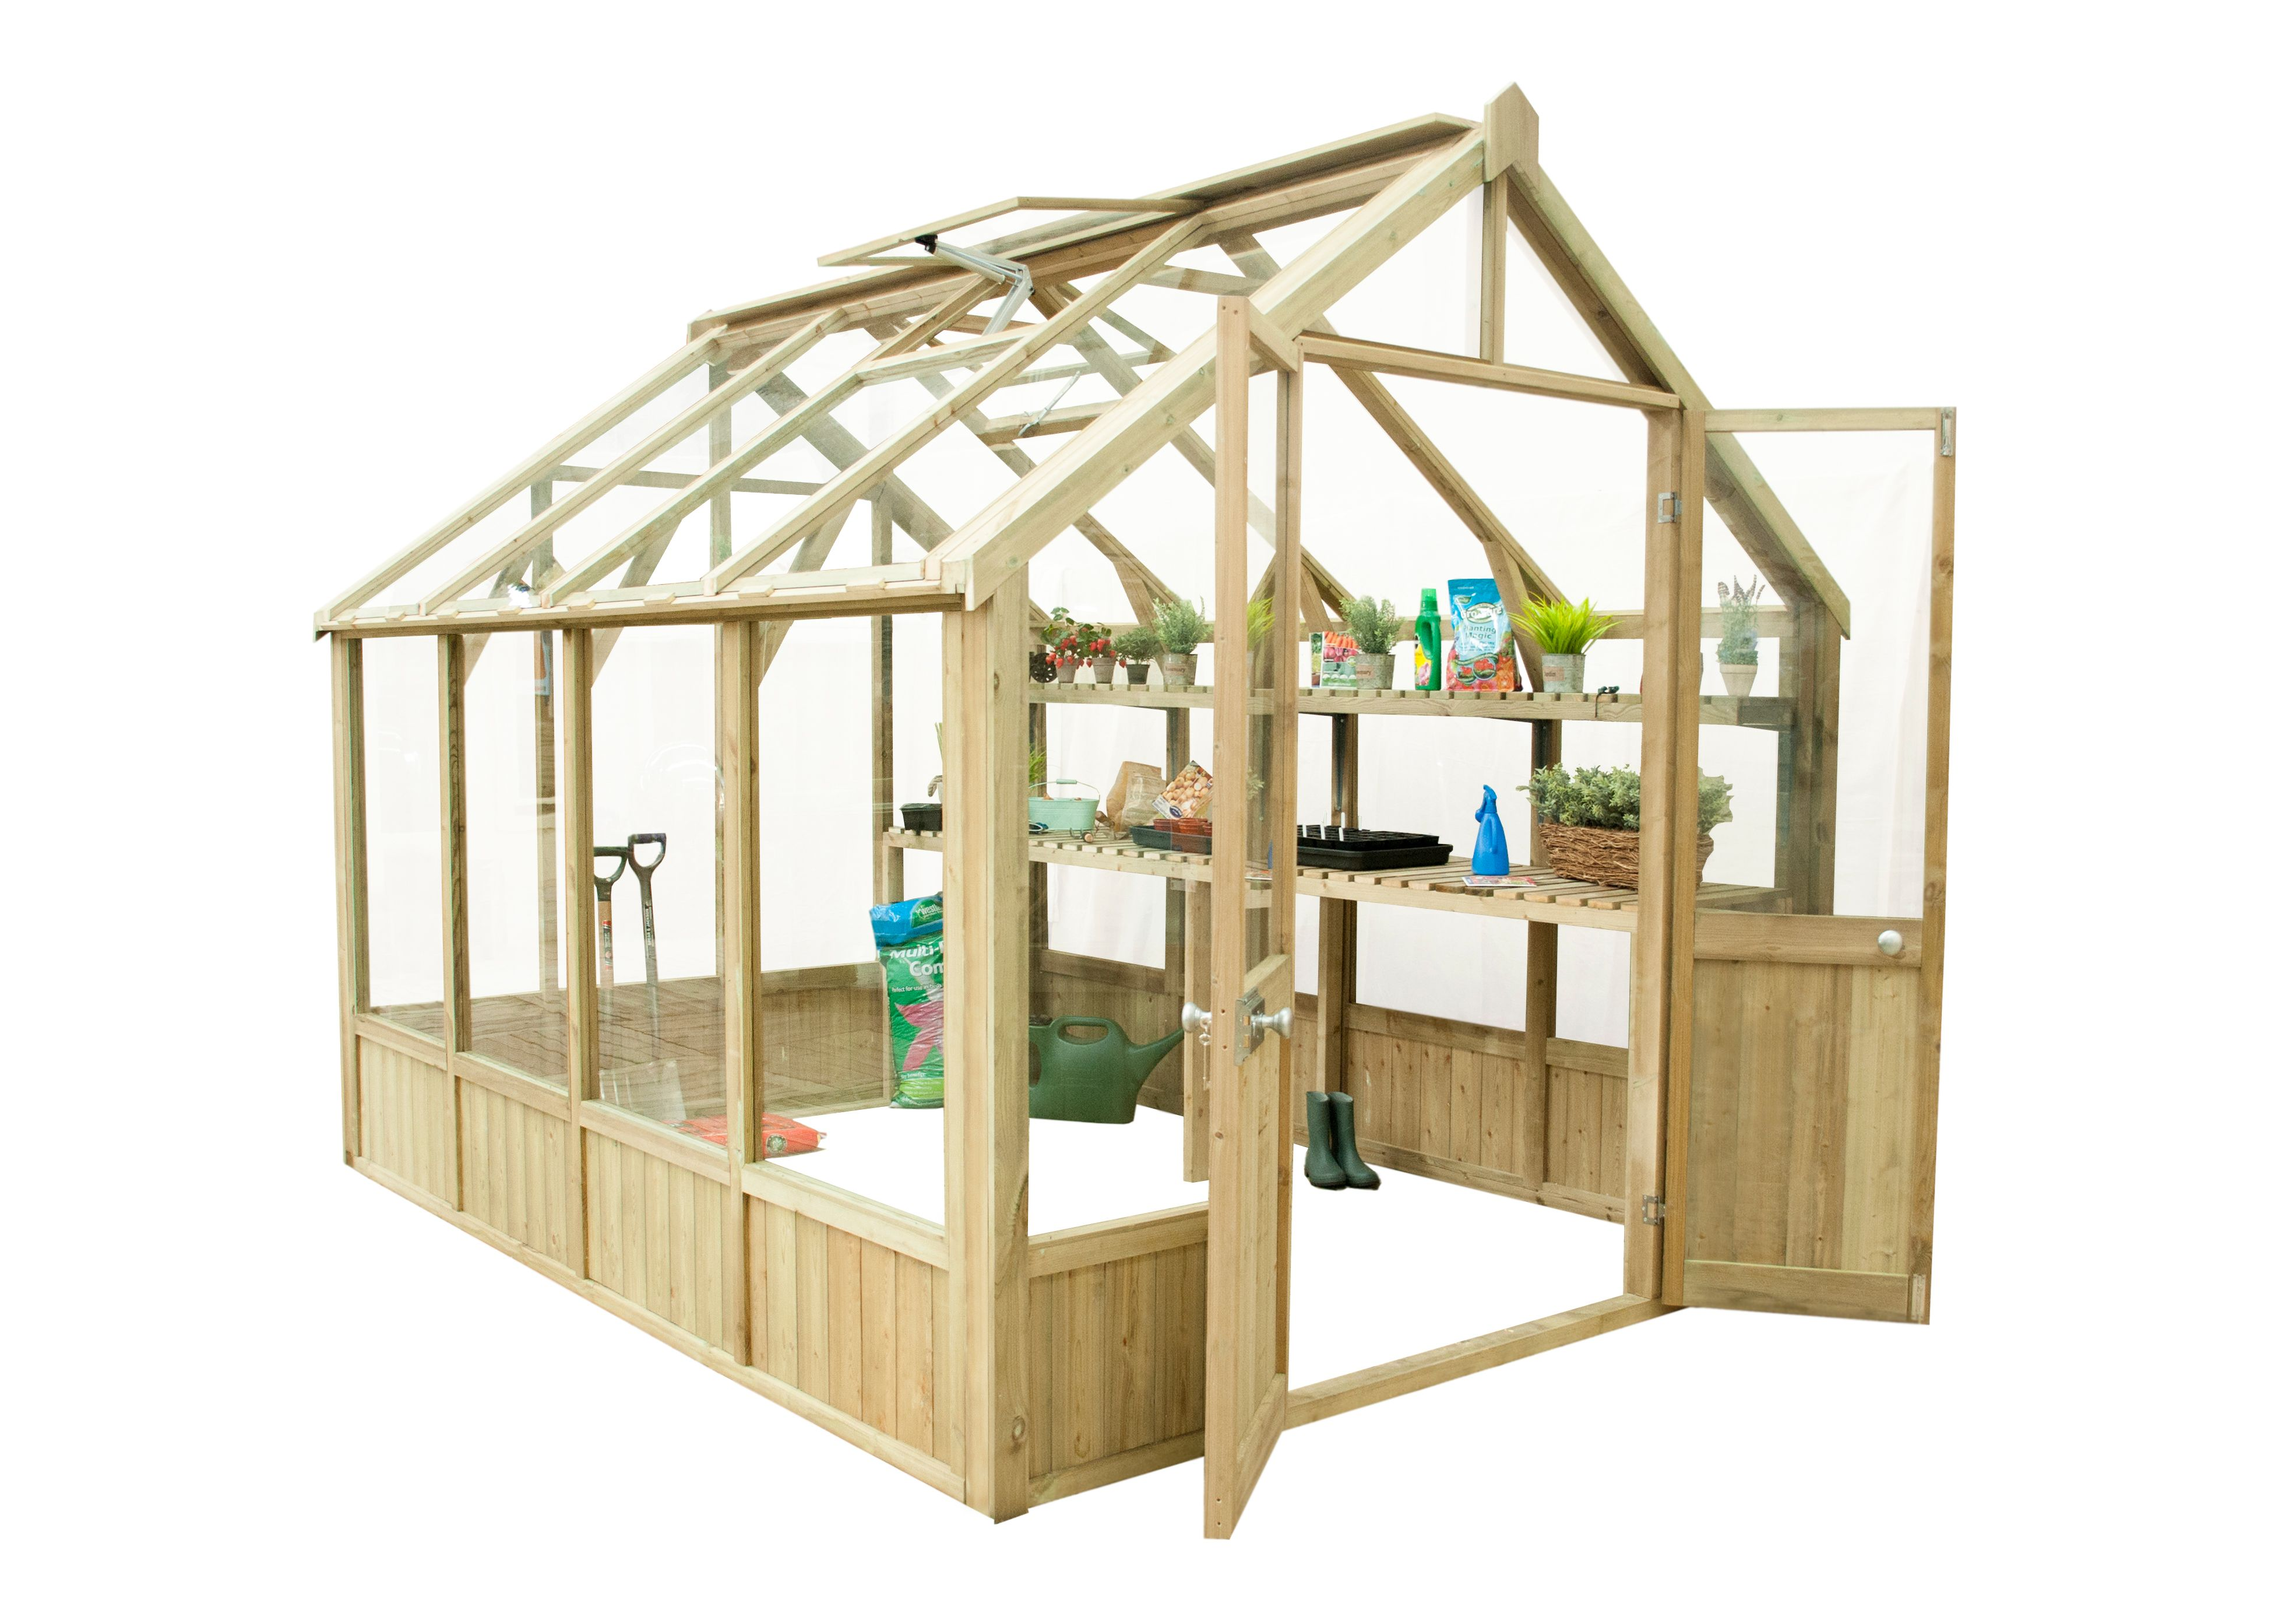 Garden sheds storage buildings greenhouses wood plastic sheds garden storage greenhouses baanklon Choice Image